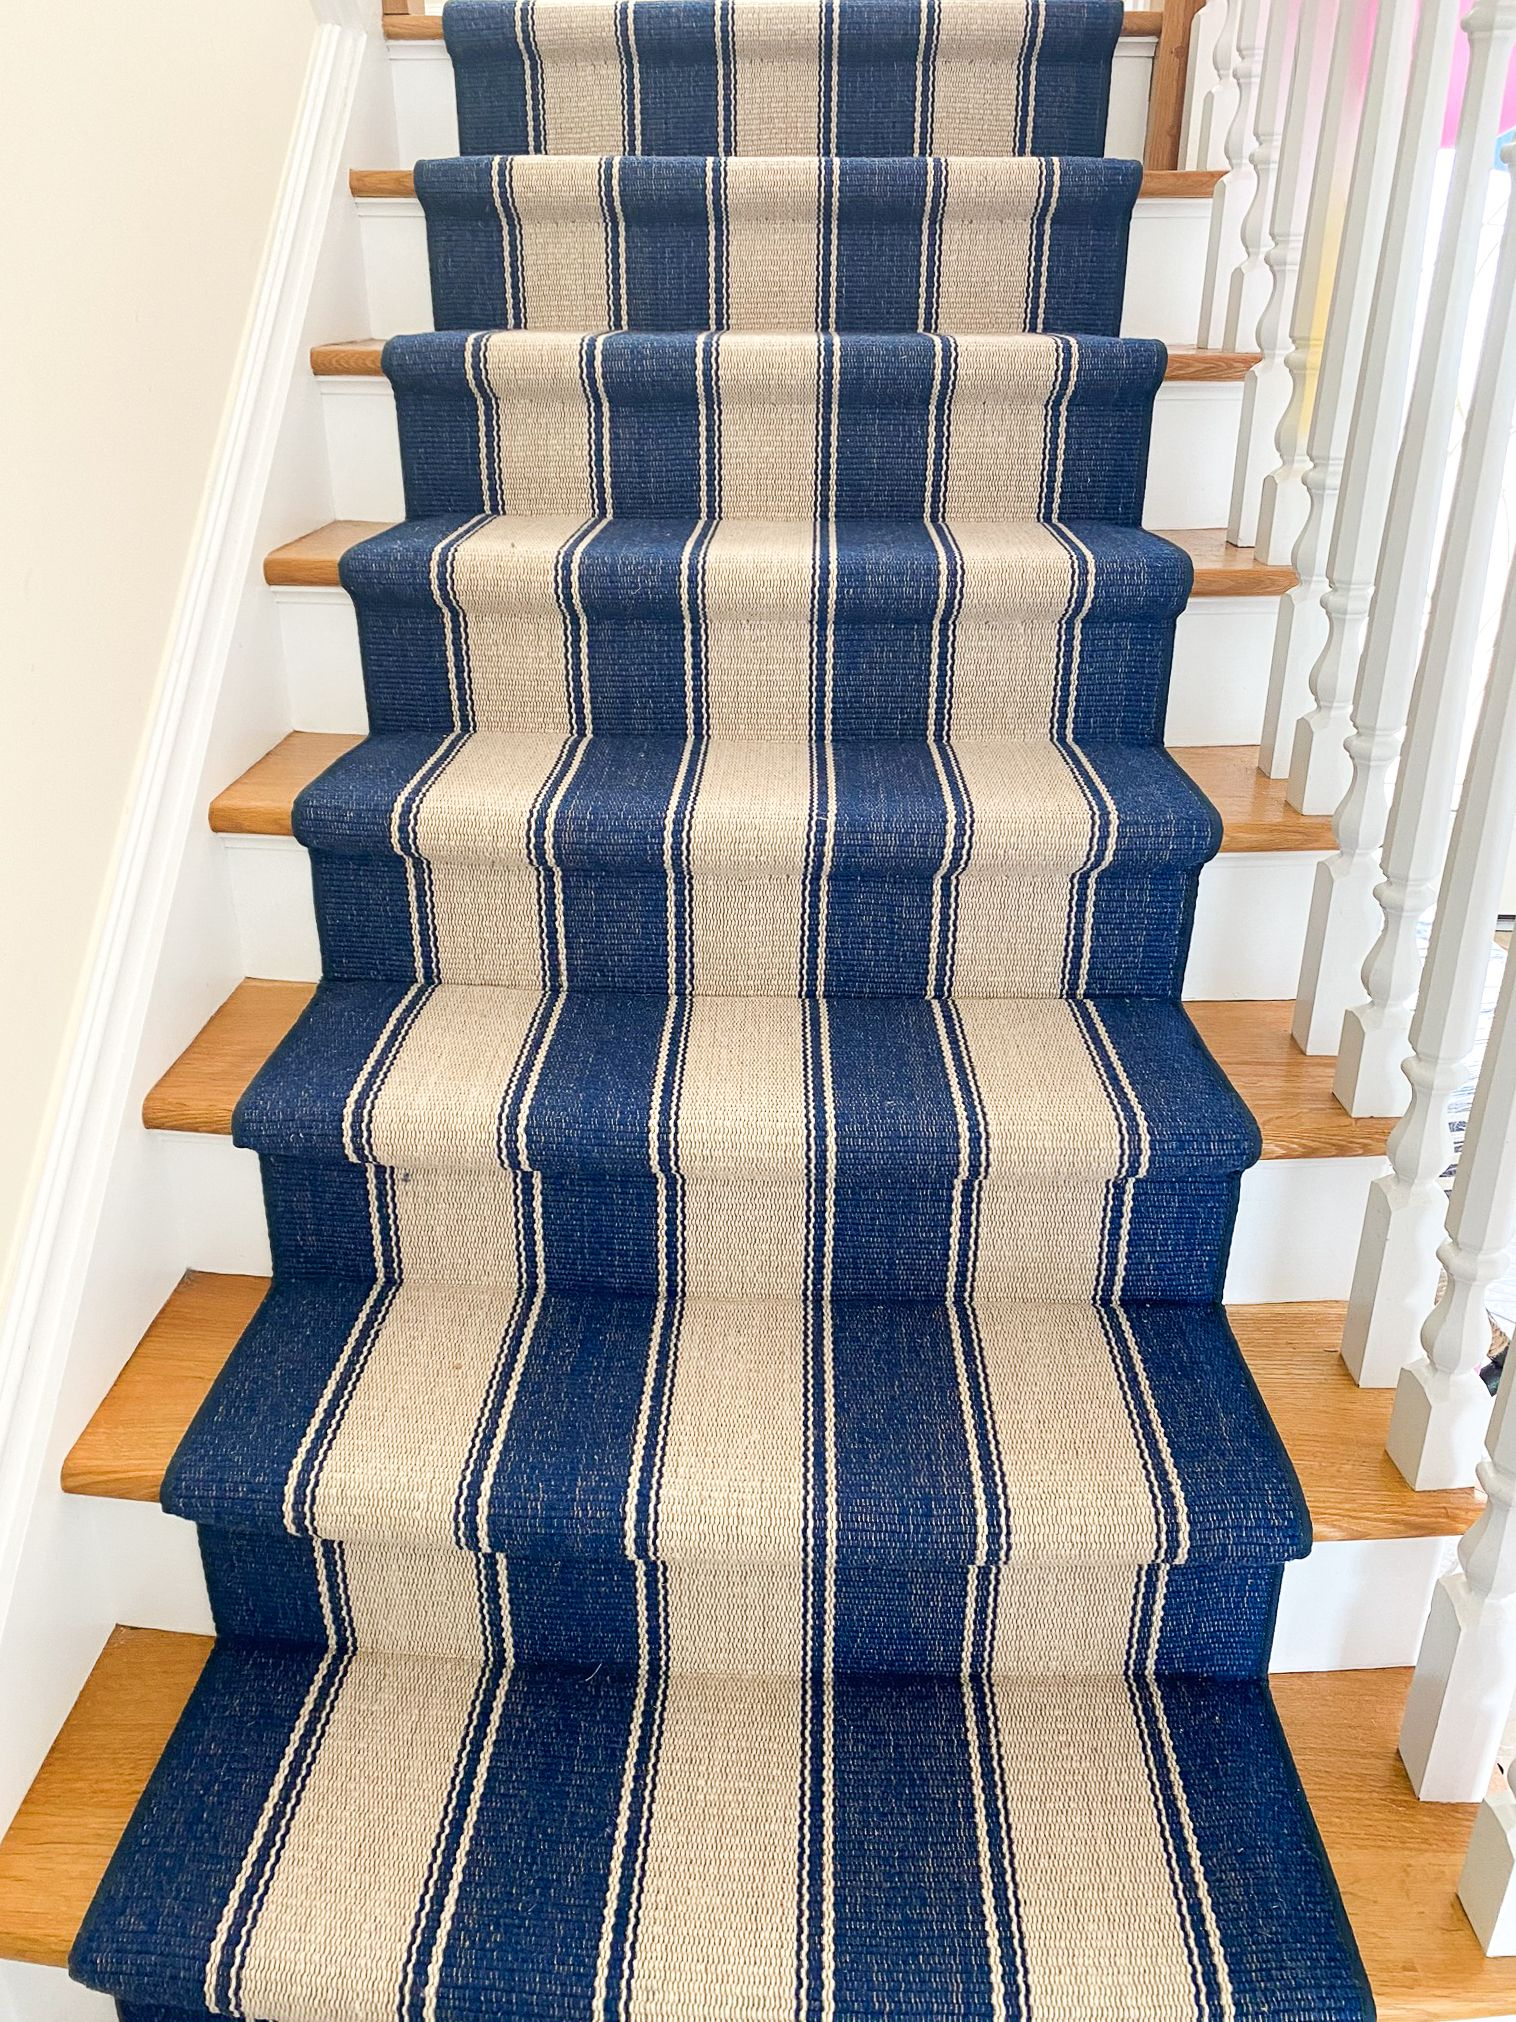 Blue And White Striped Stair Runner In 2020 Stair Runner Striped Carpet Stairs Striped Stair Runner